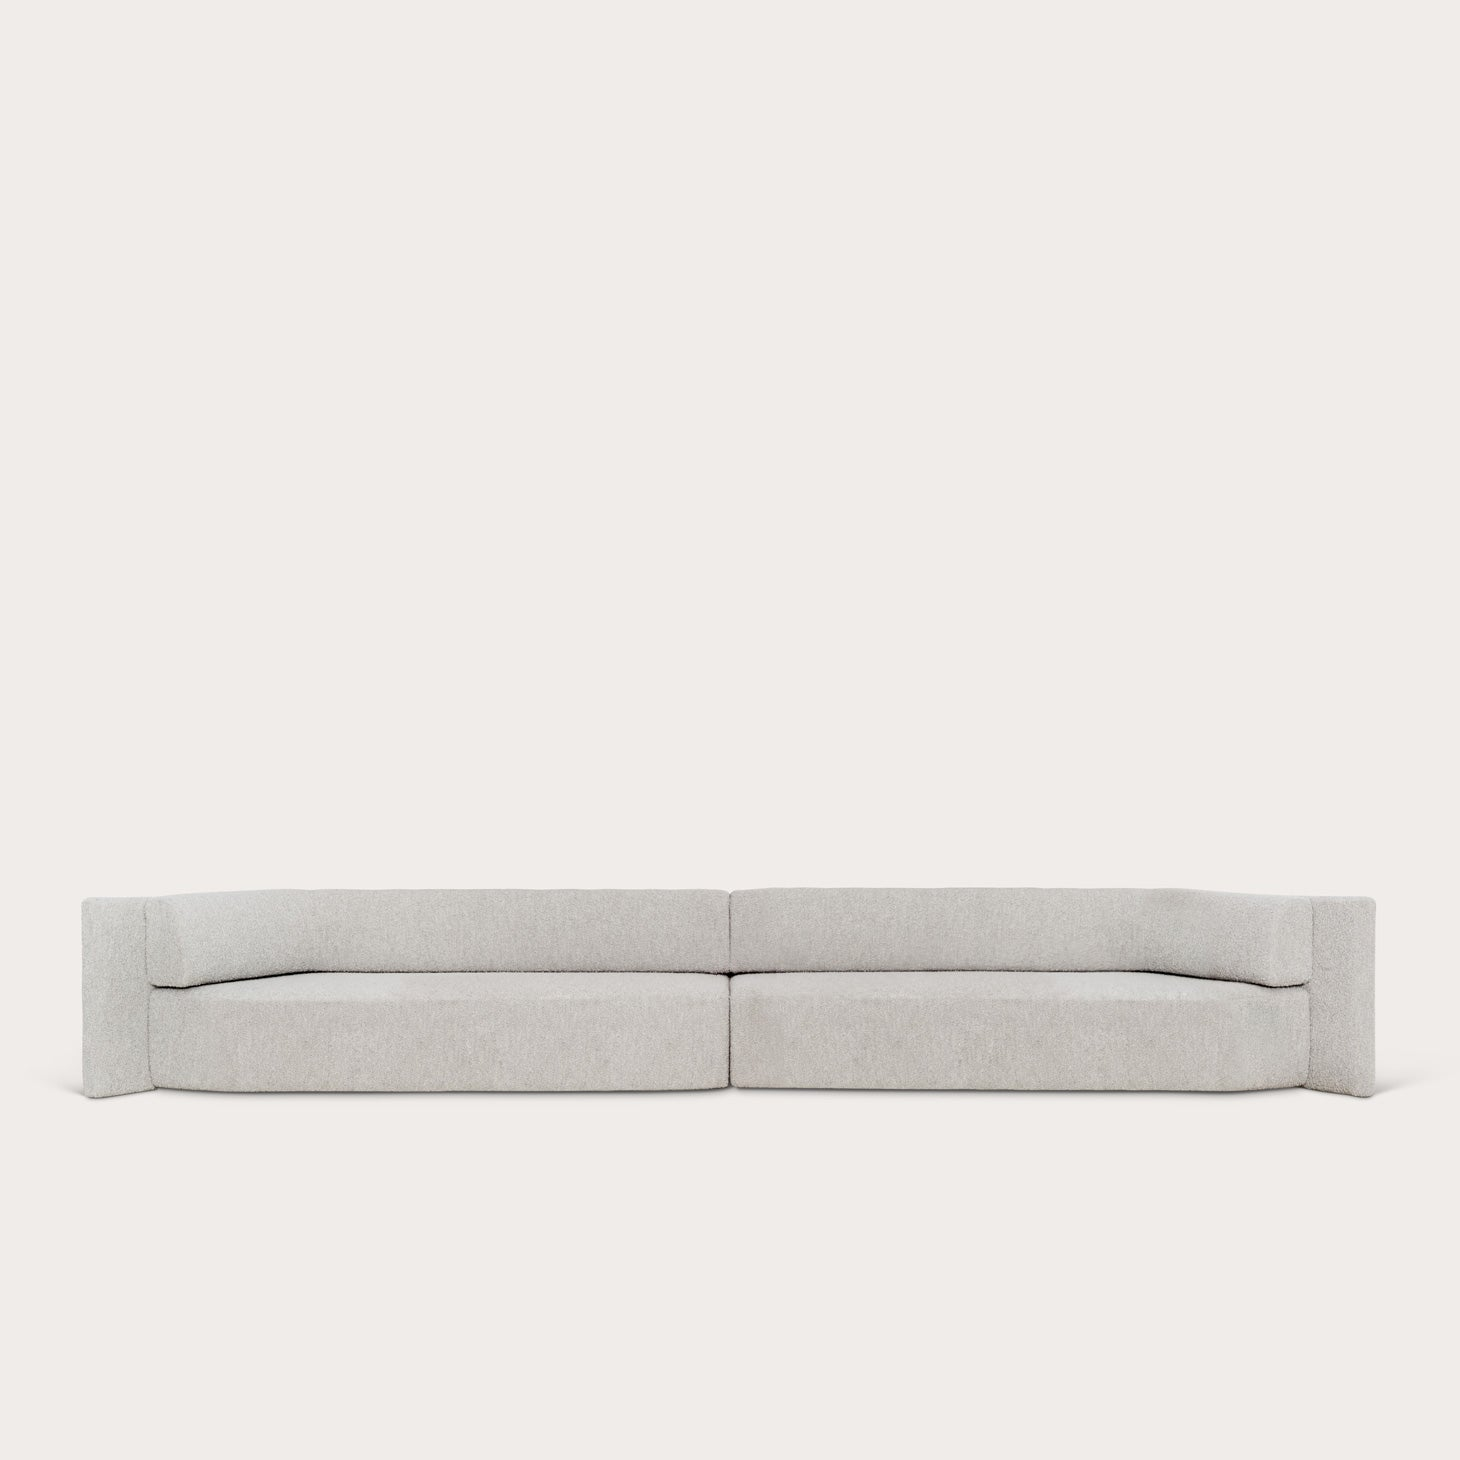 EKO Double Sofa Seating Christophe Delcourt Designer Furniture Sku: 008-240-10195